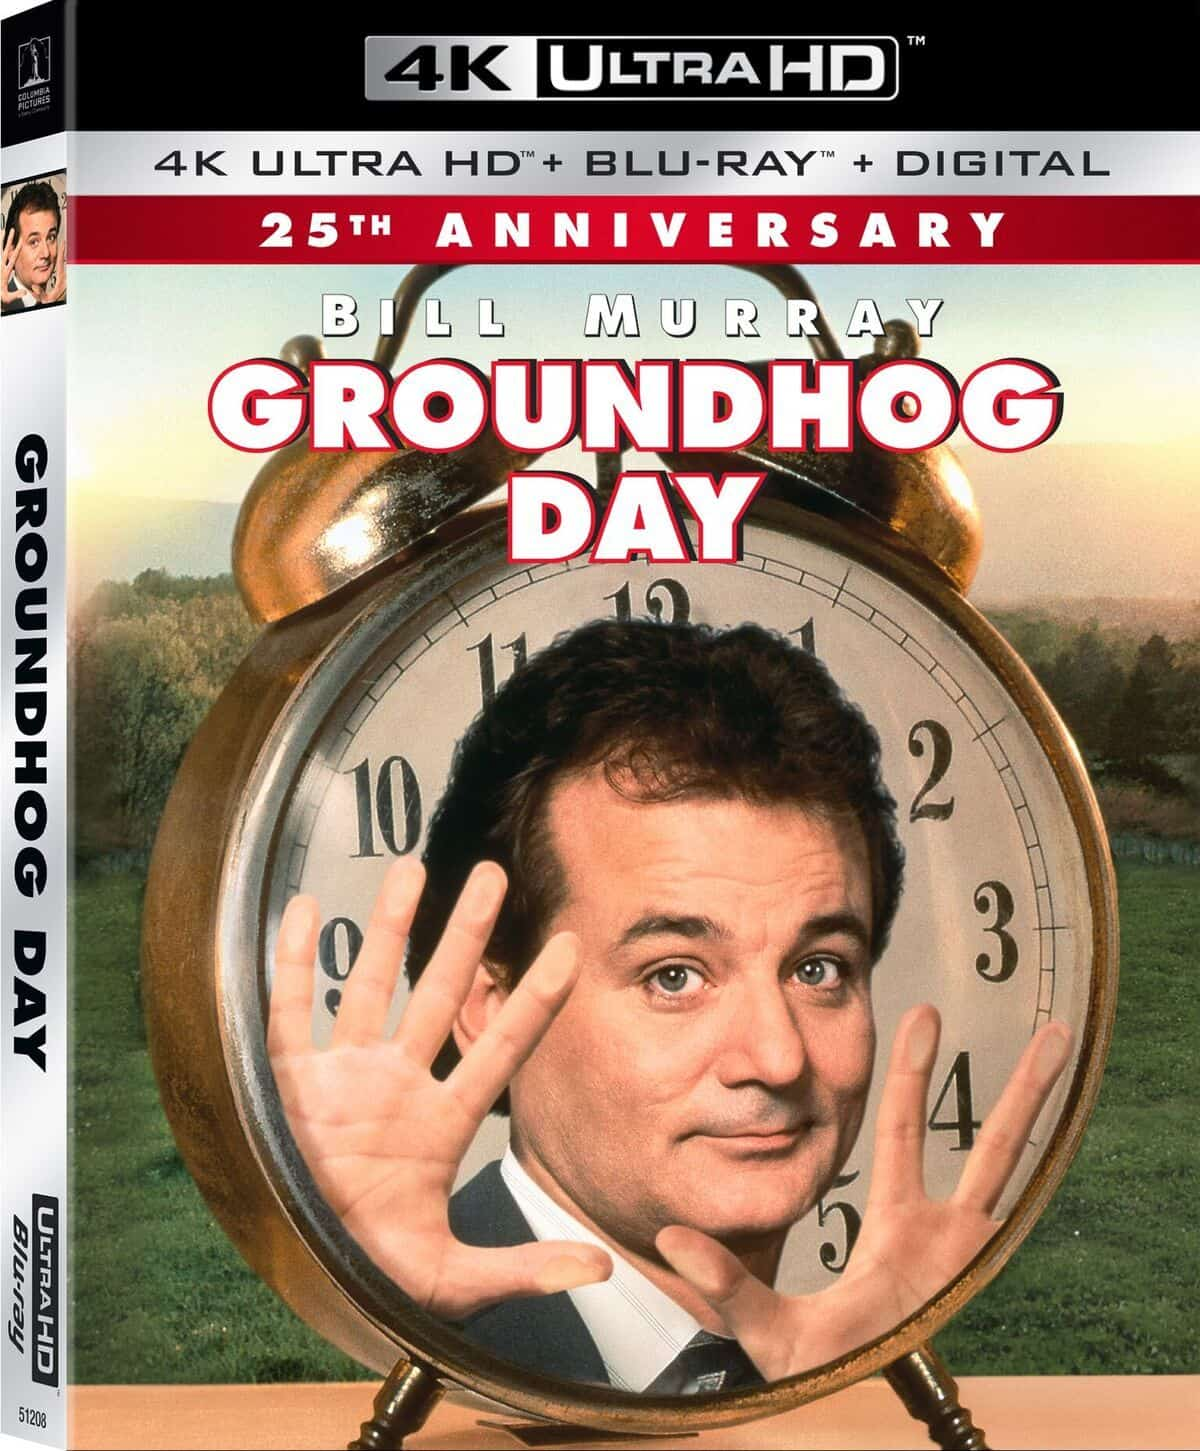 Groundhog Day 4K HDR 1993 Ultra HD Rip 2160p